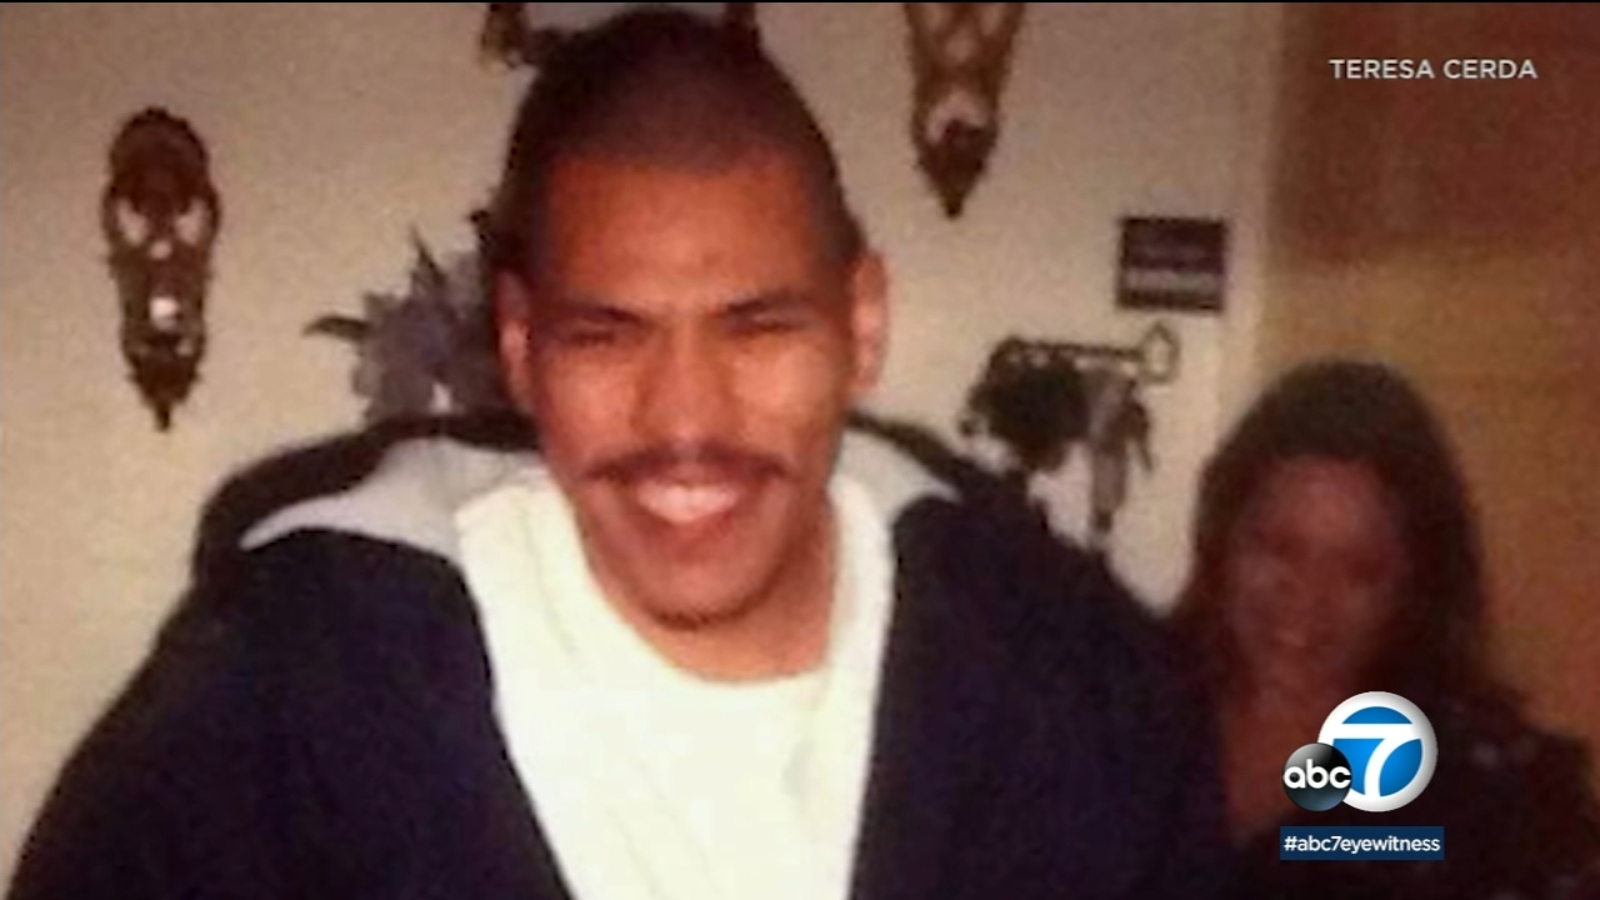 Missing North Hollywood man with schizophrenia found safe in South LA